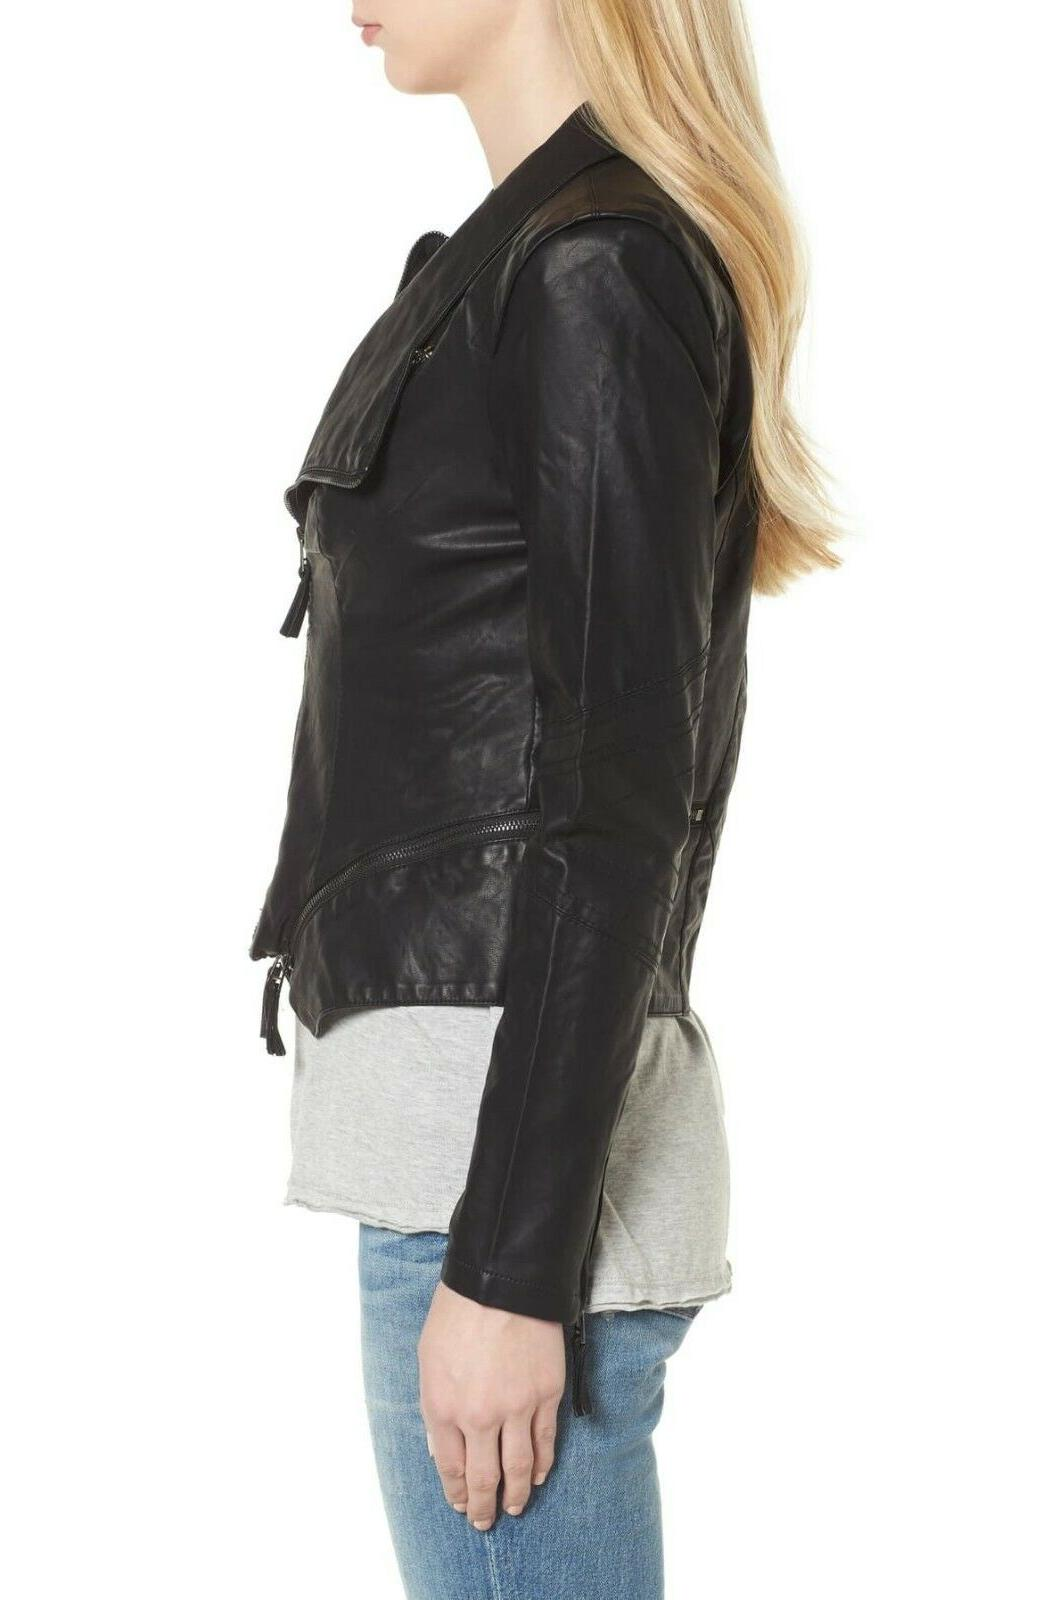 New BlankNYC Blank Women's Black Faux Jacket Size